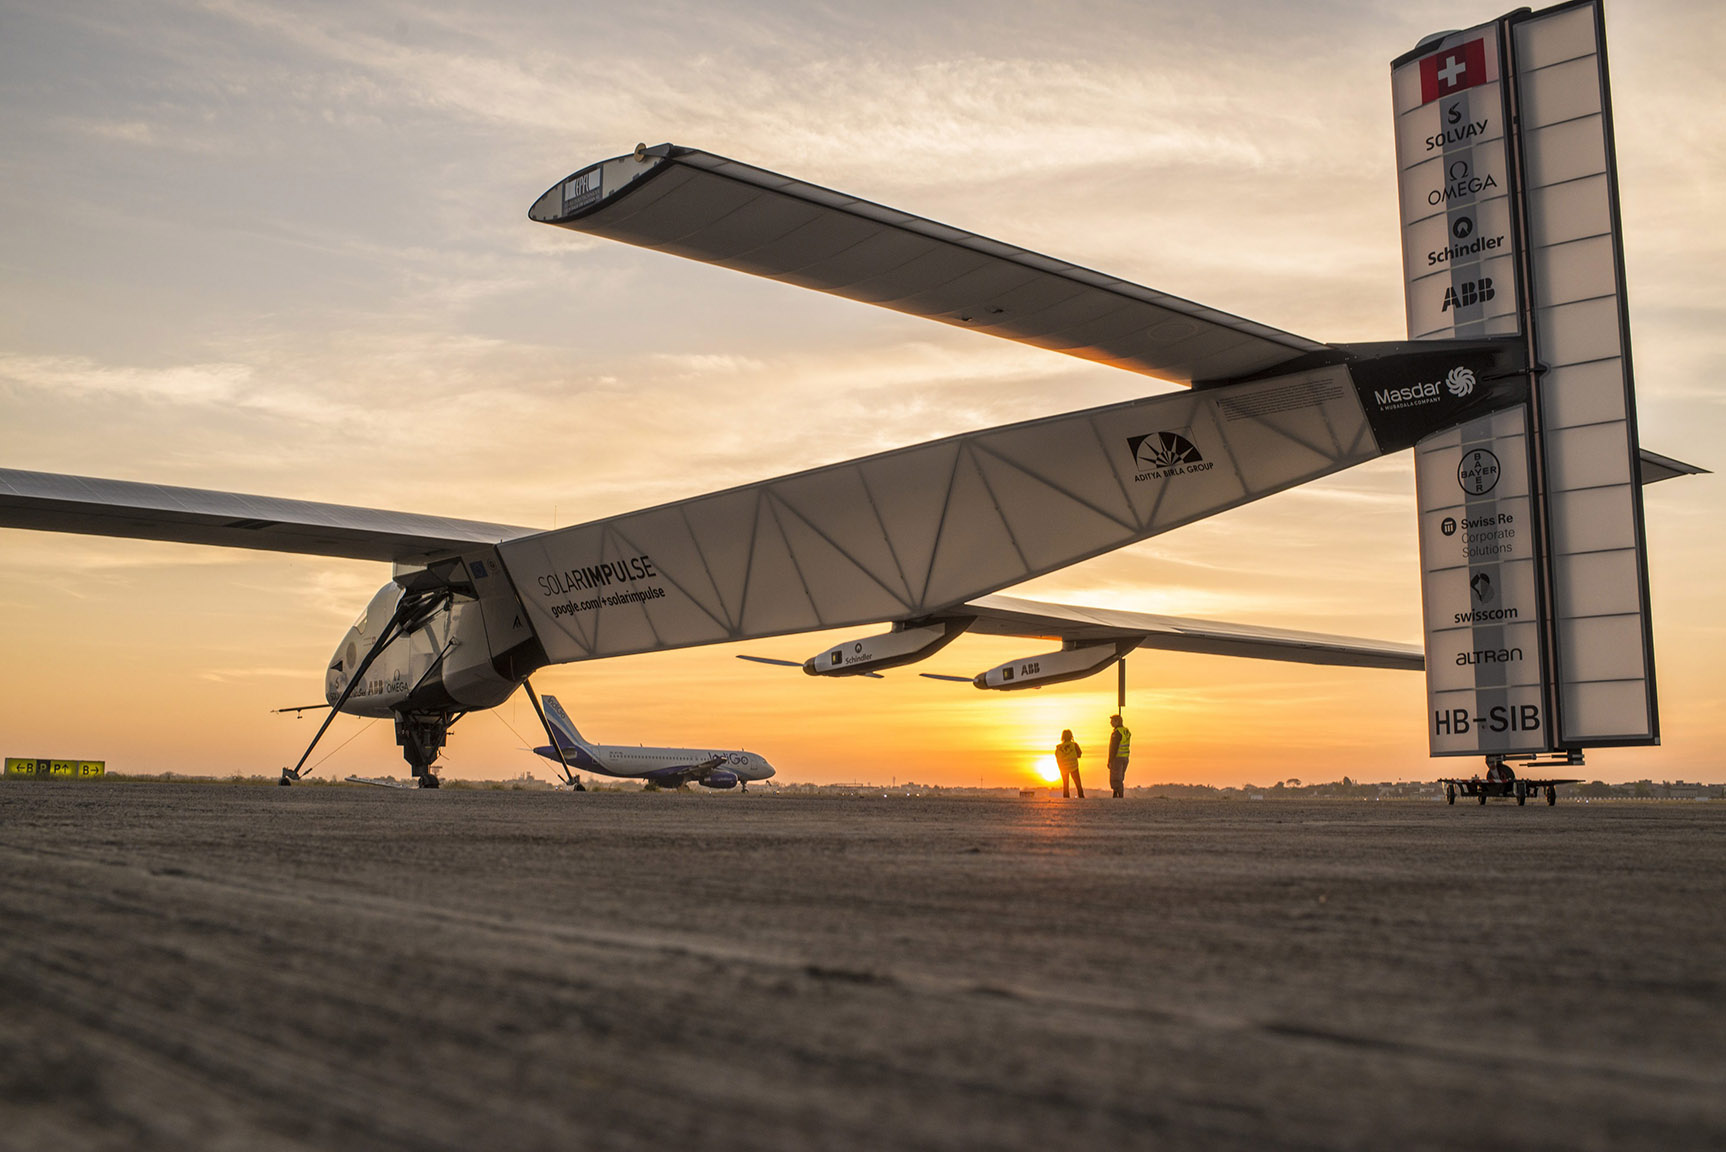 Solar Impulse on round-the-world tour